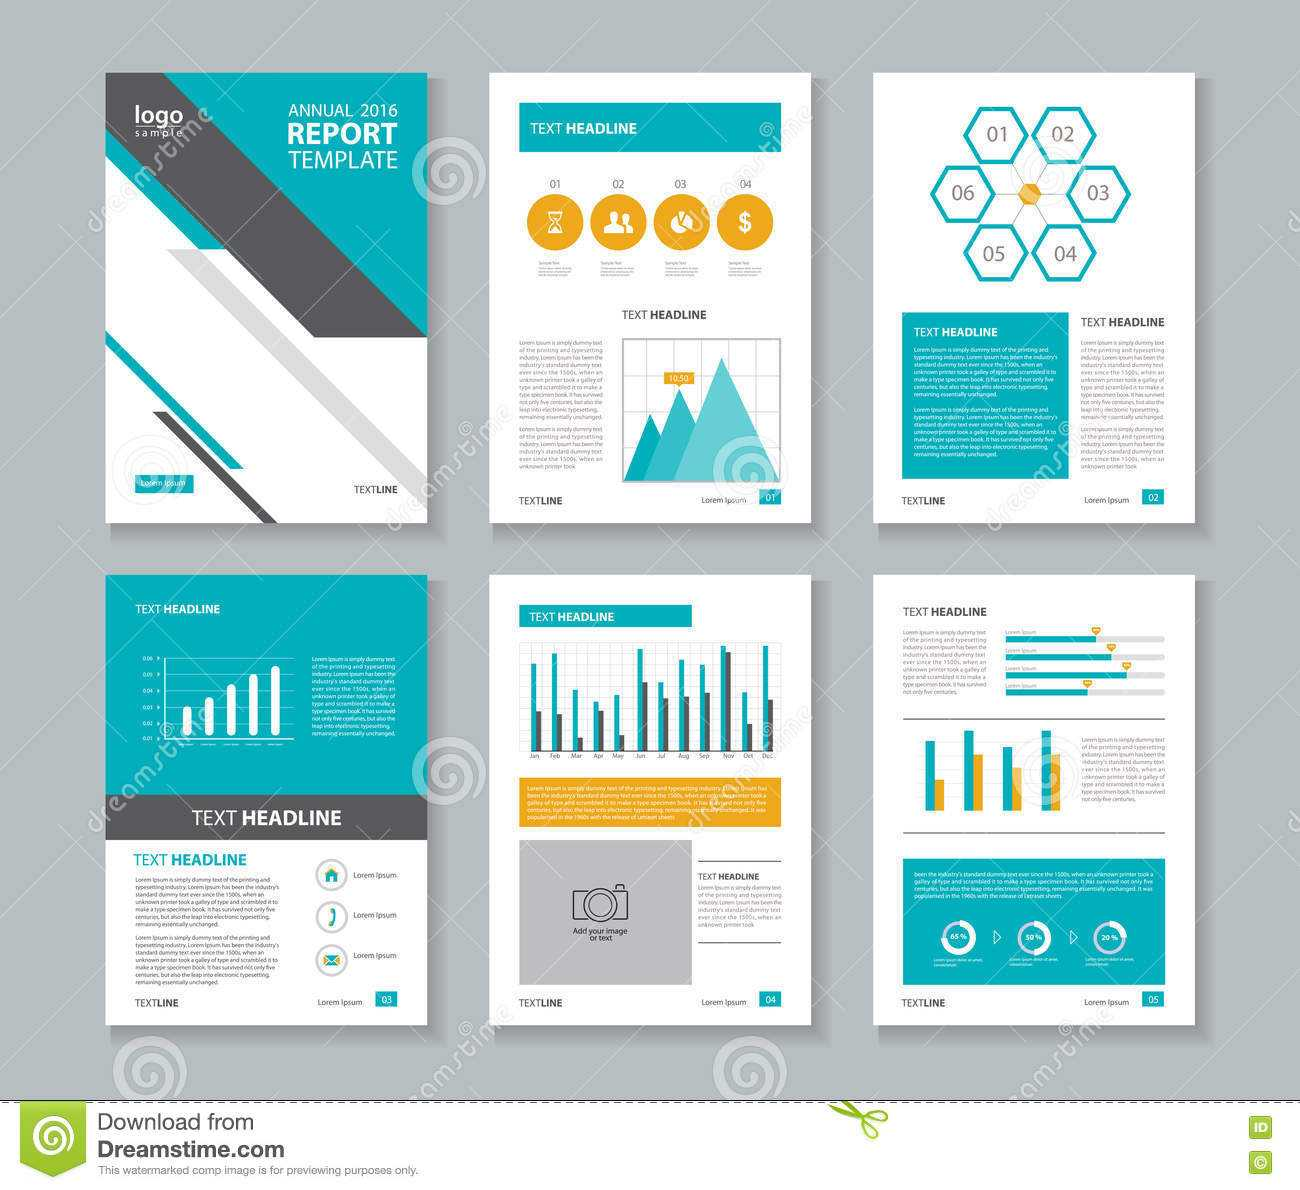 Templates For Annual Reports - All New Resume Examples Within Annual Report Template Word